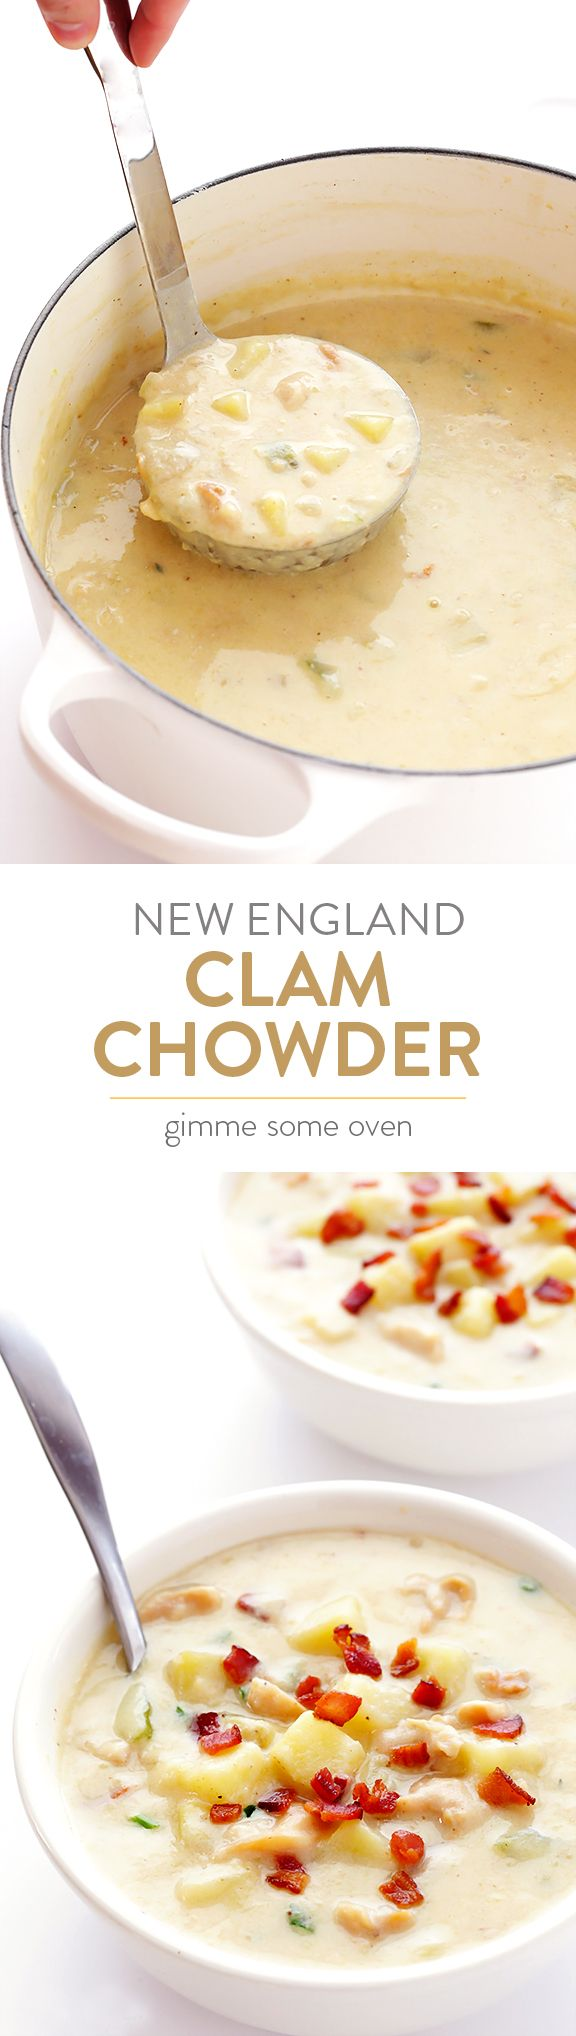 This New England Clam Chowder soup is made lighter with a few simple tweaks, yet it's still super creamy and delicious! | gimmesomeoven.com